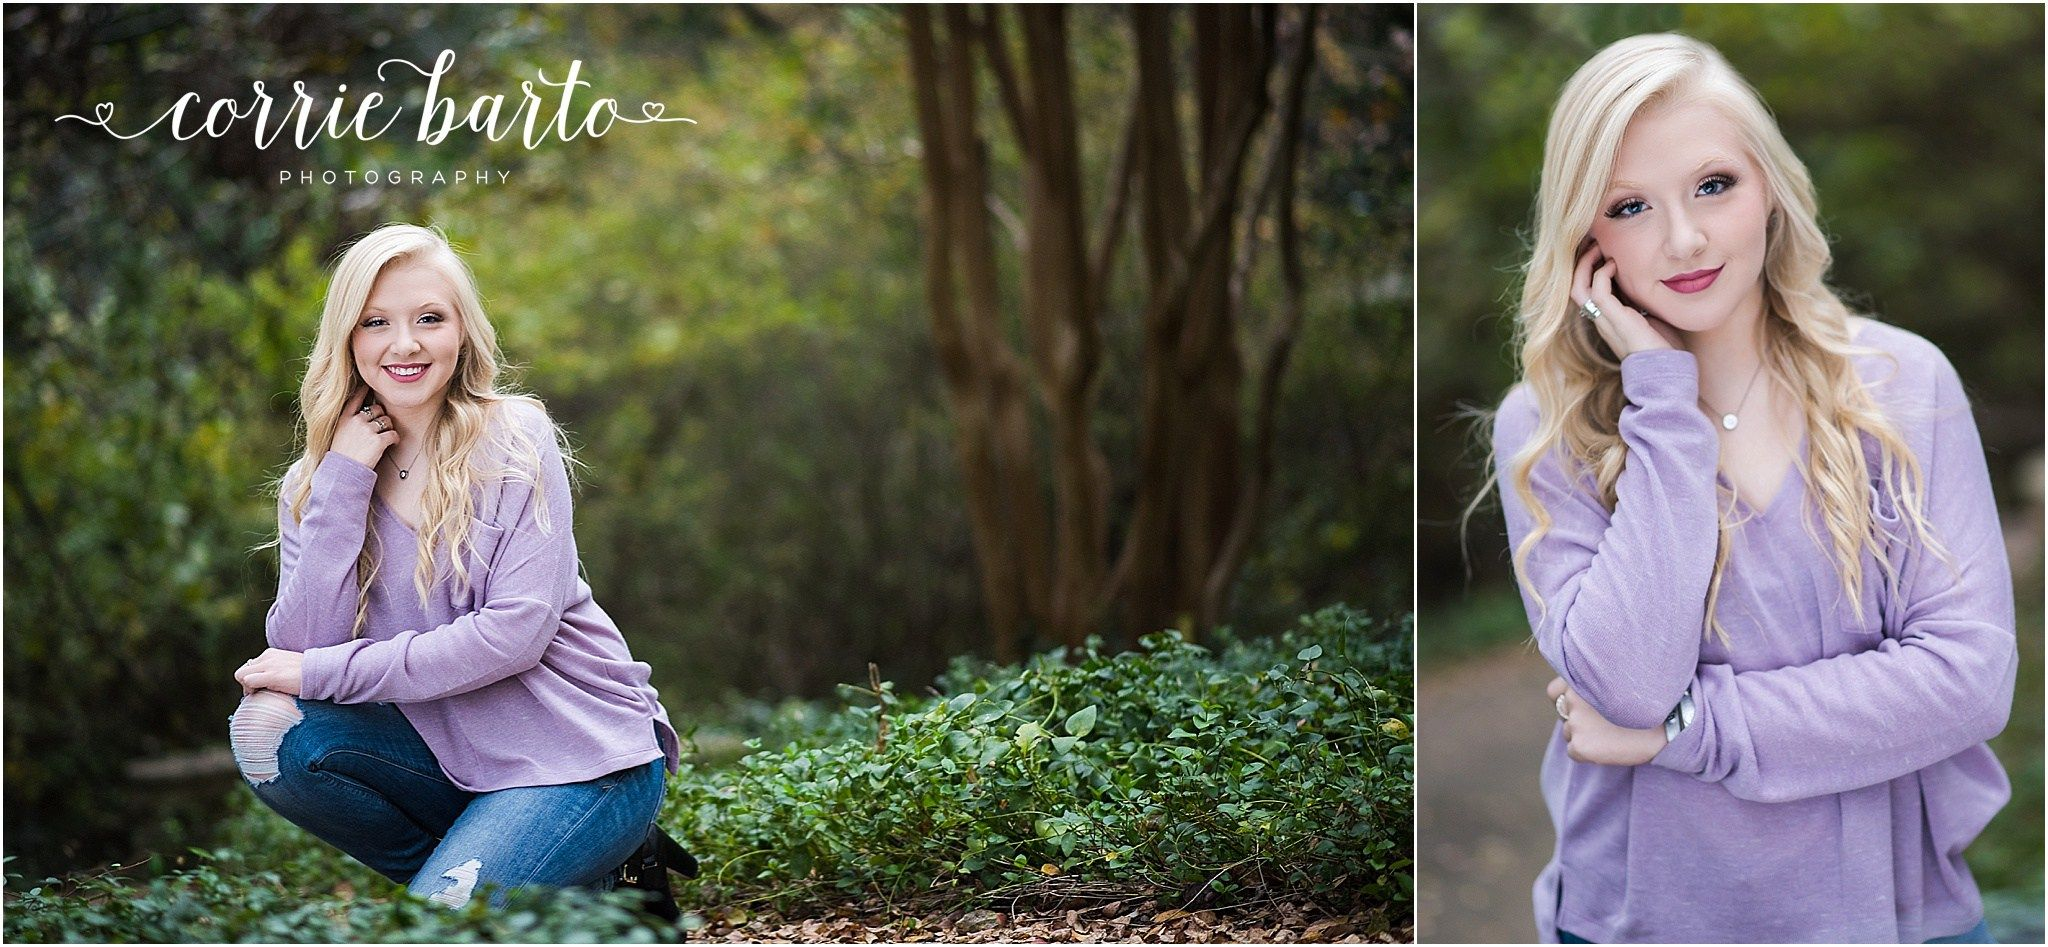 olivia s senior session was downtown dallas in the arts district and